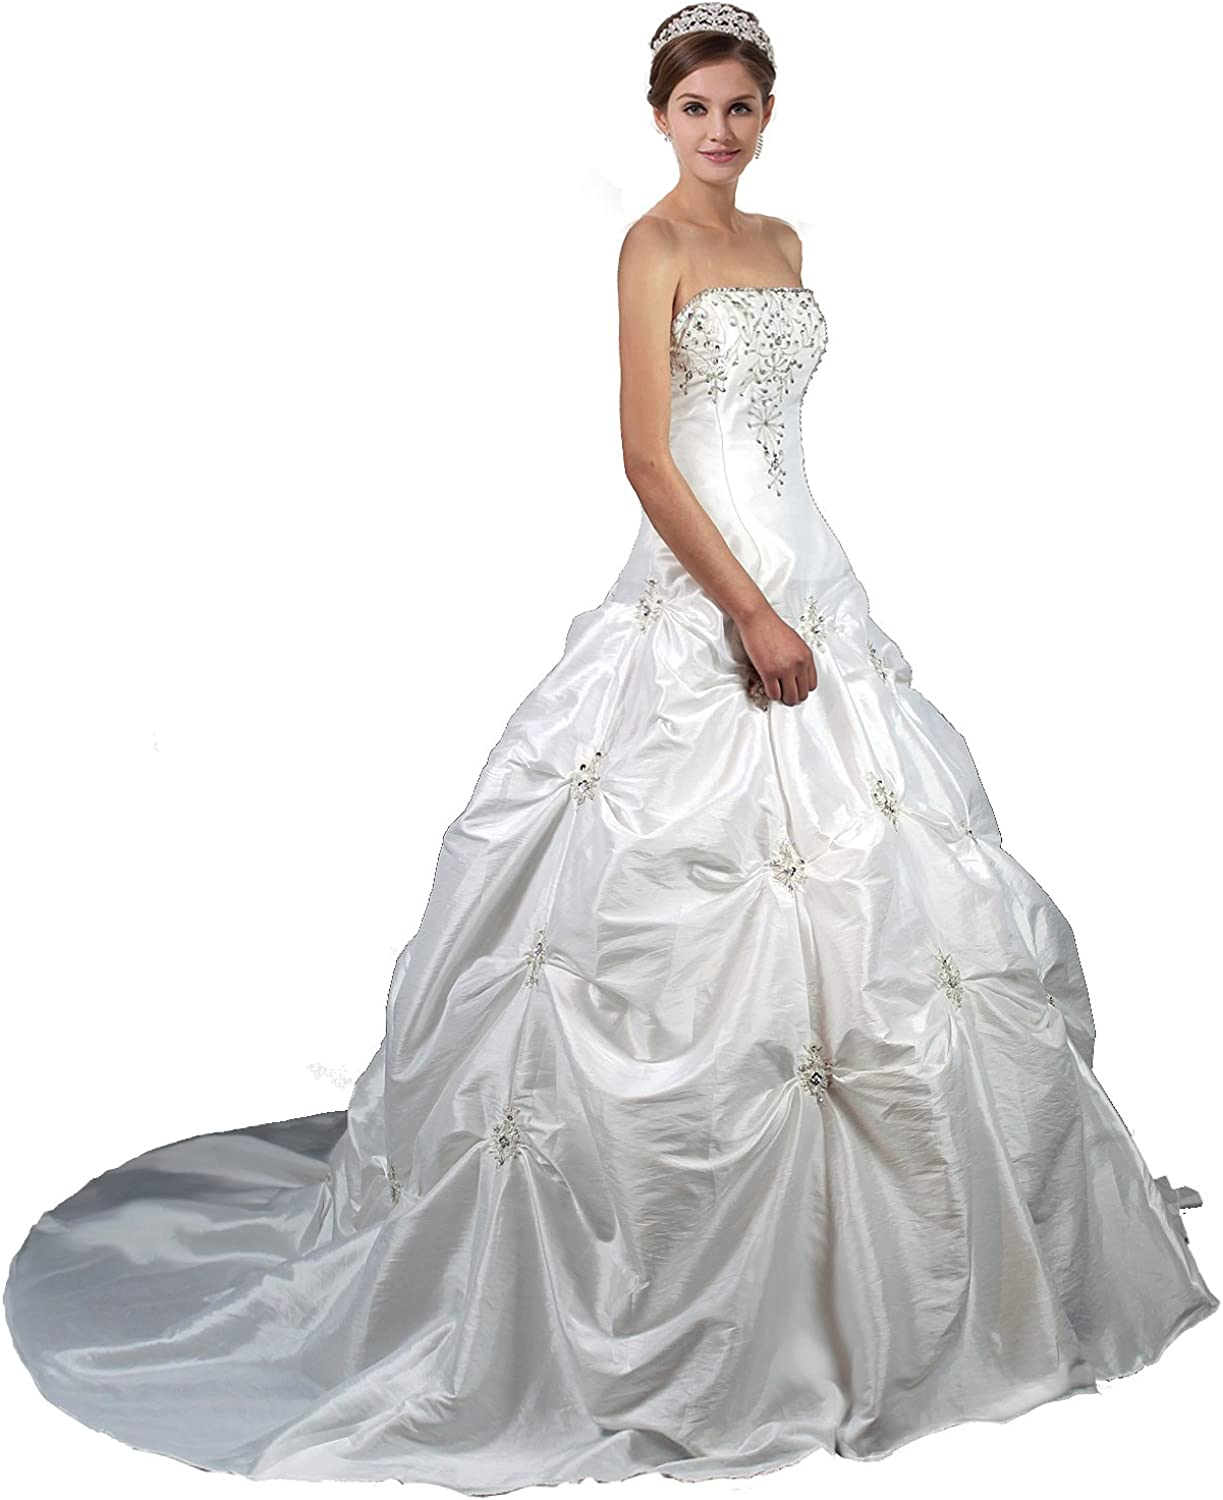 Faironly M58 White Ivory Wedding Dress Bride Gown (Ivory)